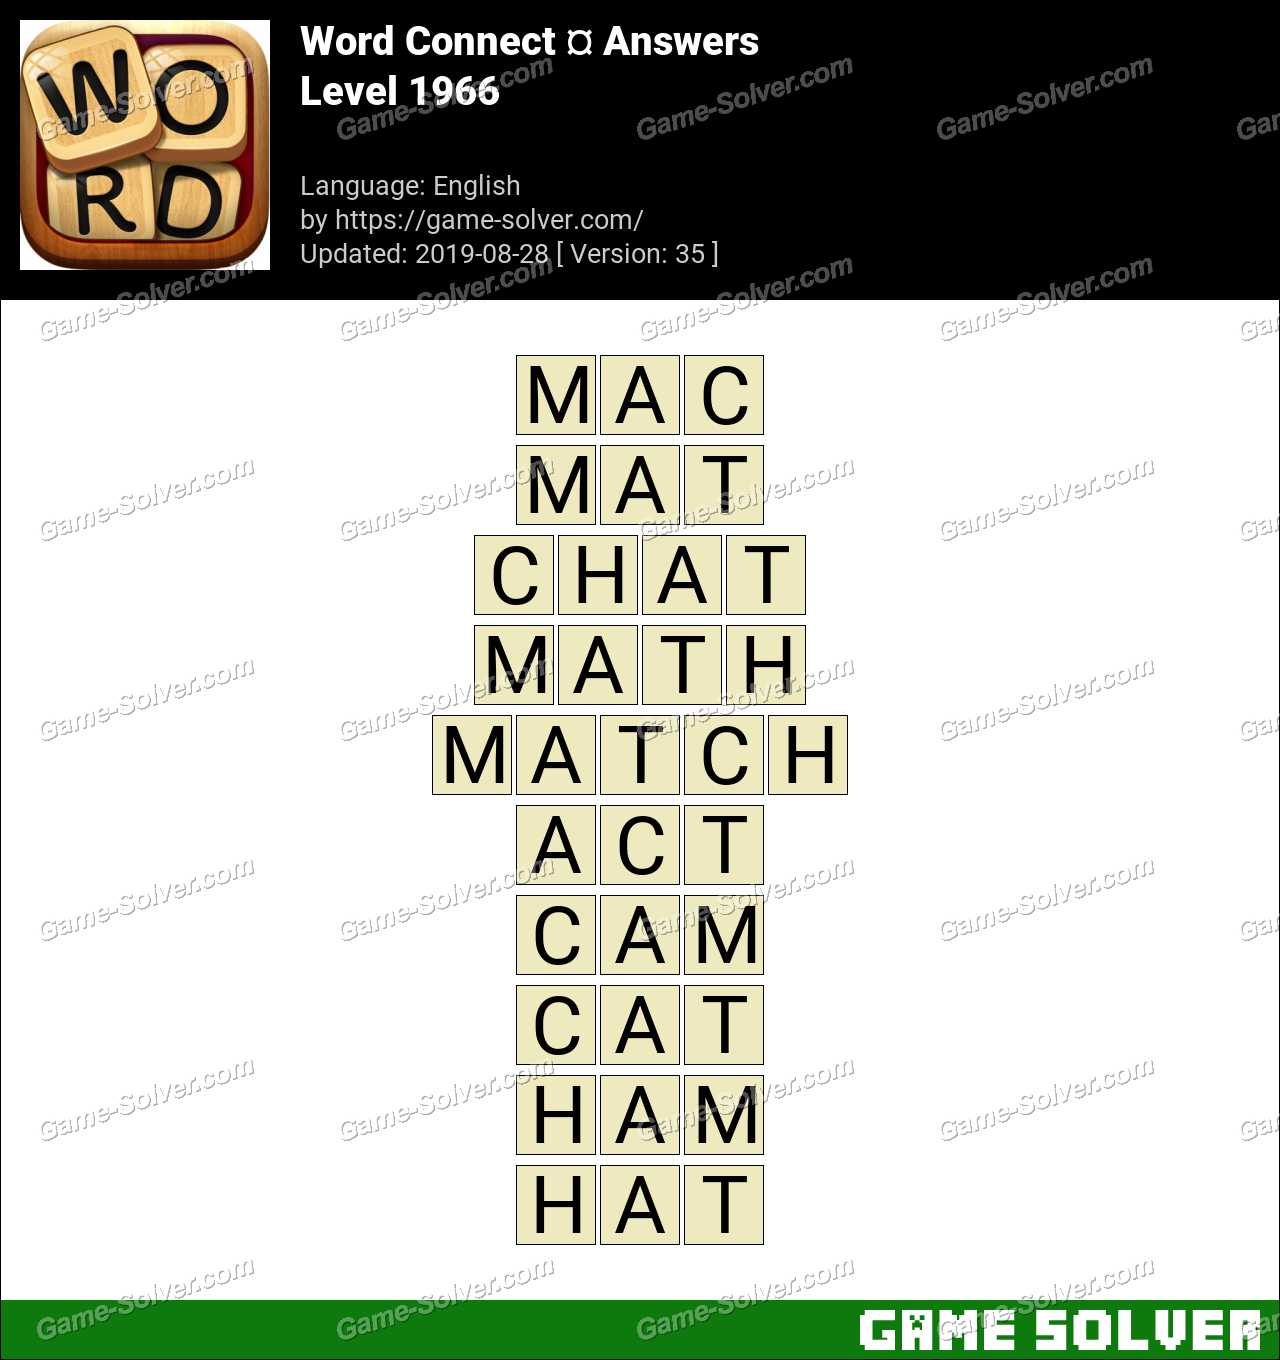 Word Connect Level 1966 Answers